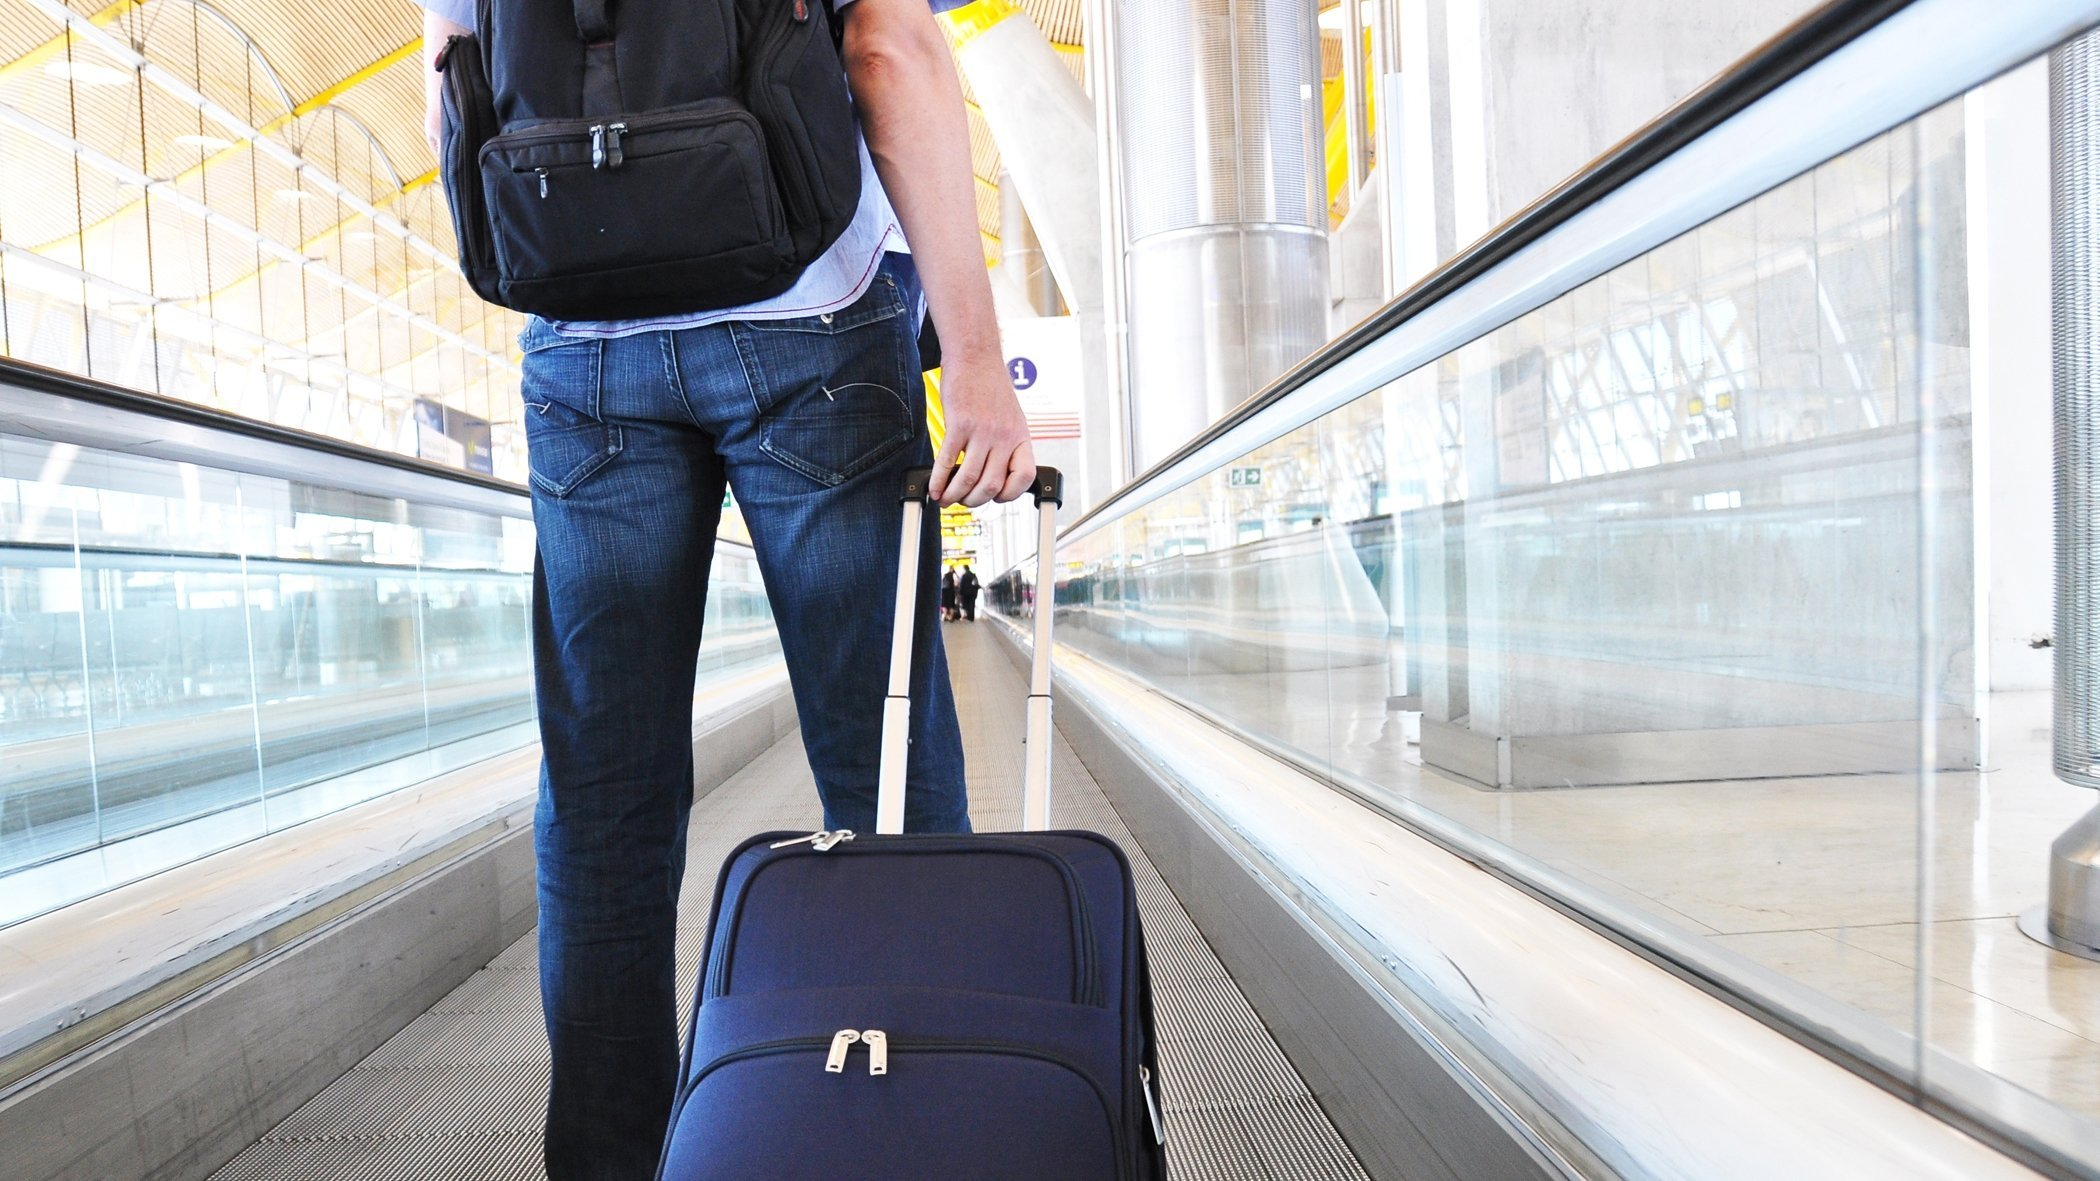 Man in airport wheeling luggage